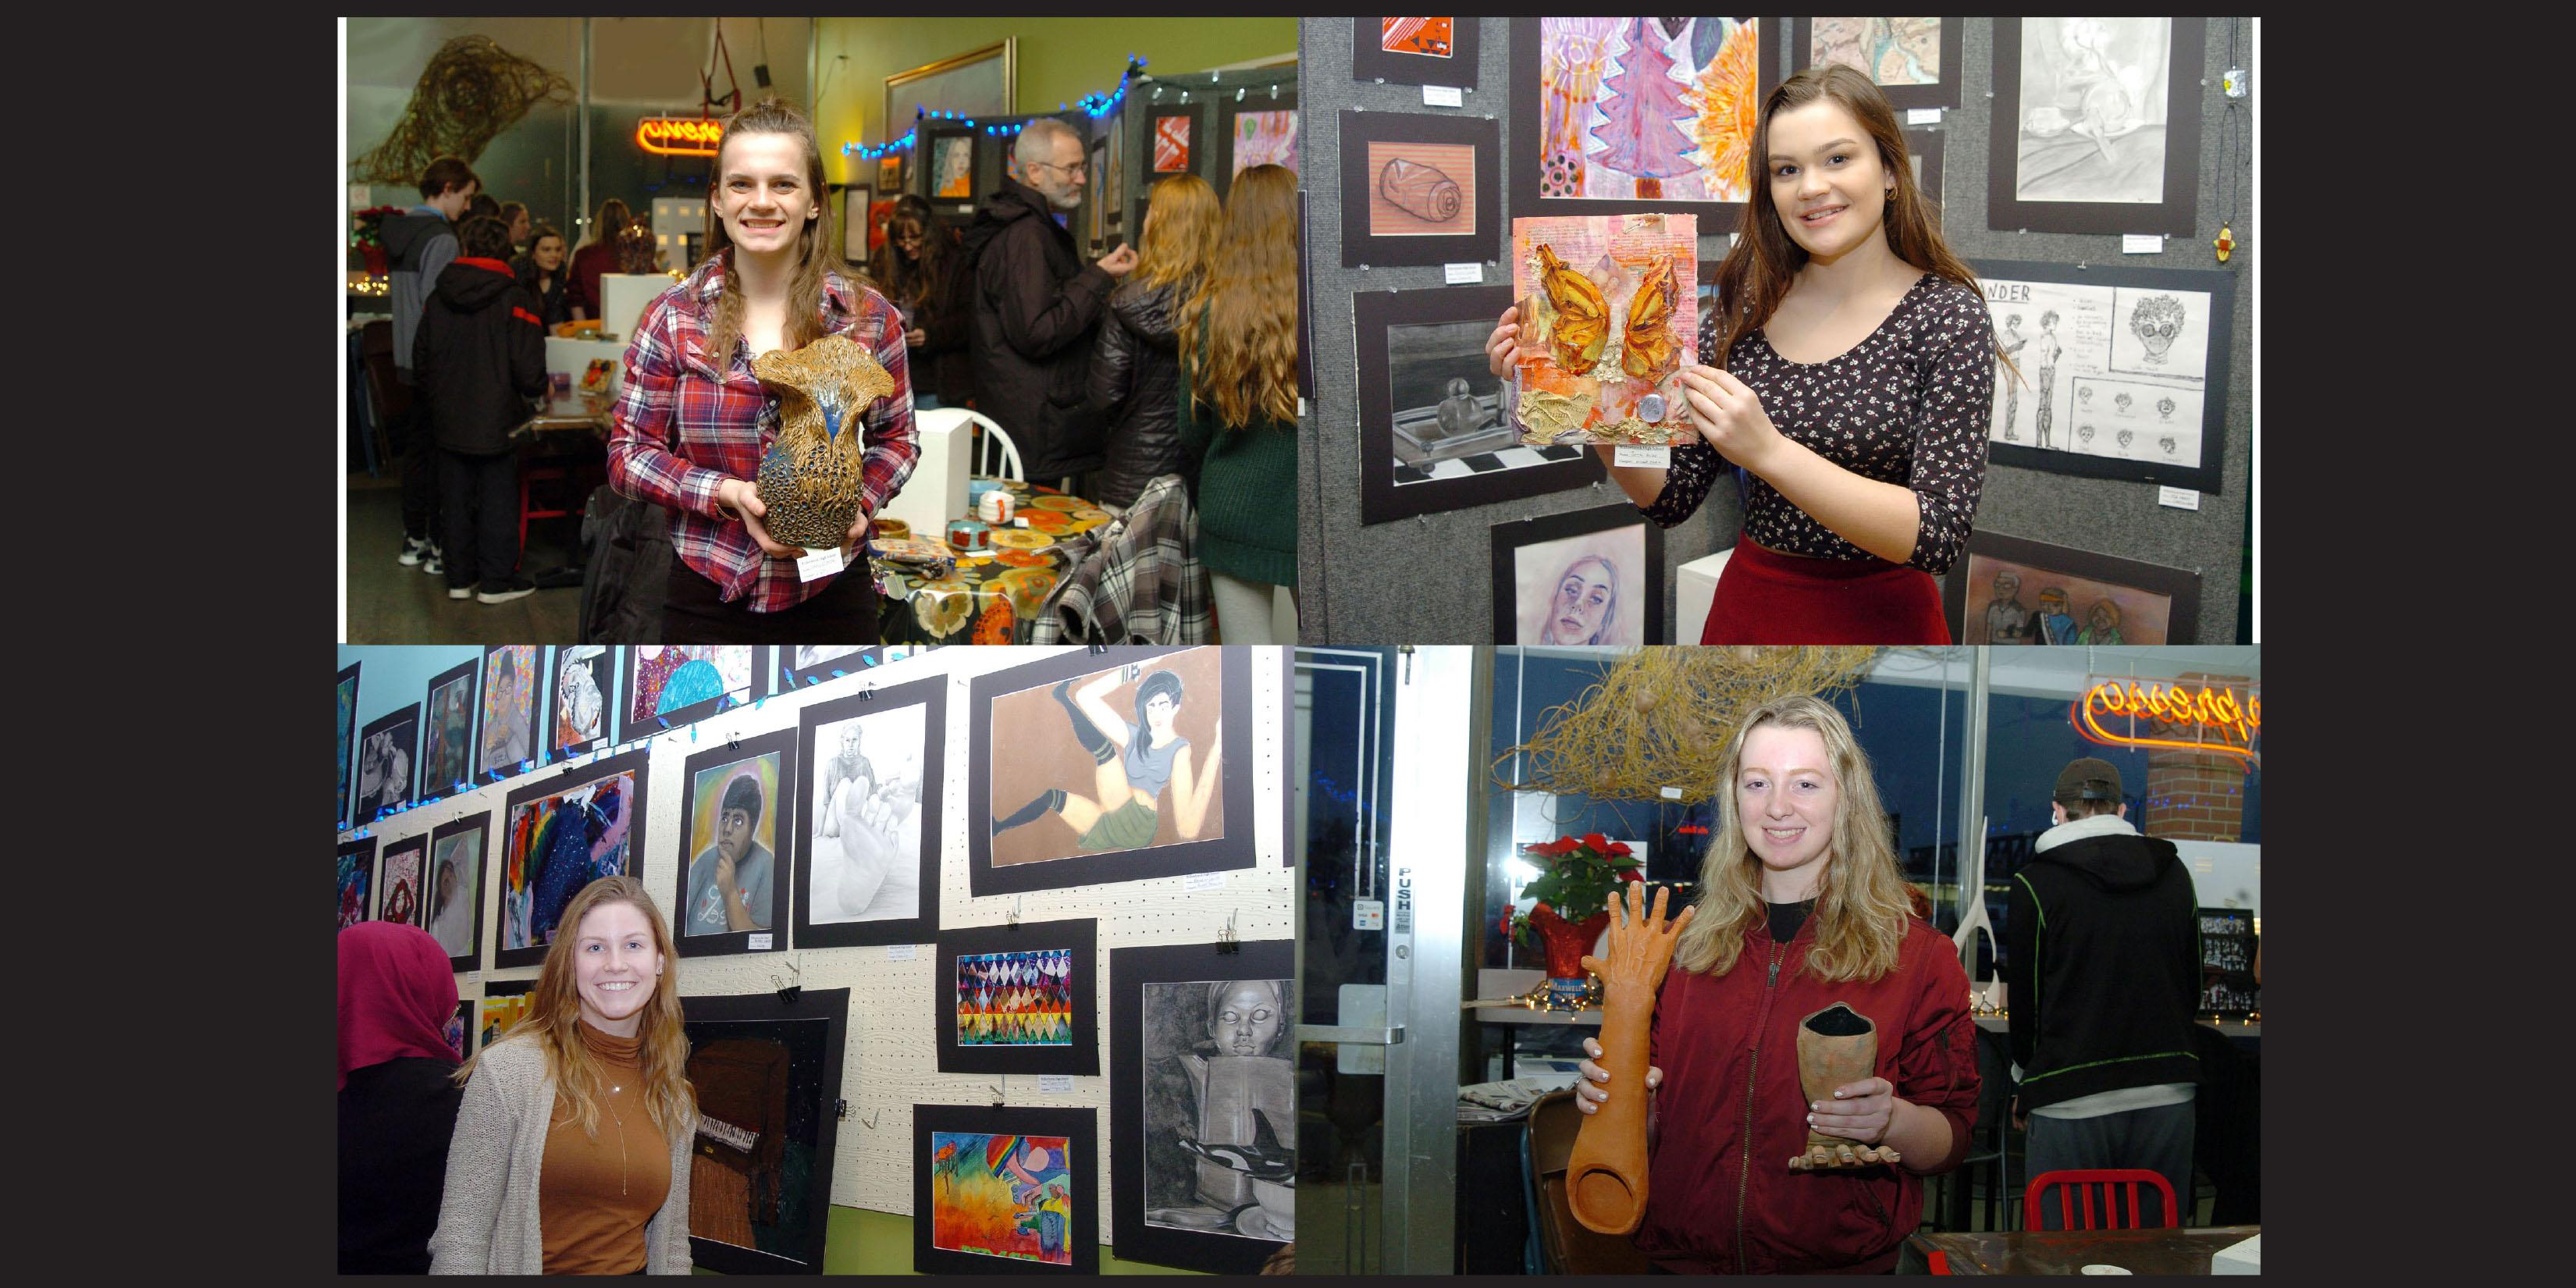 Willowbrook Student Art Show displayed in Villa Park coffee house